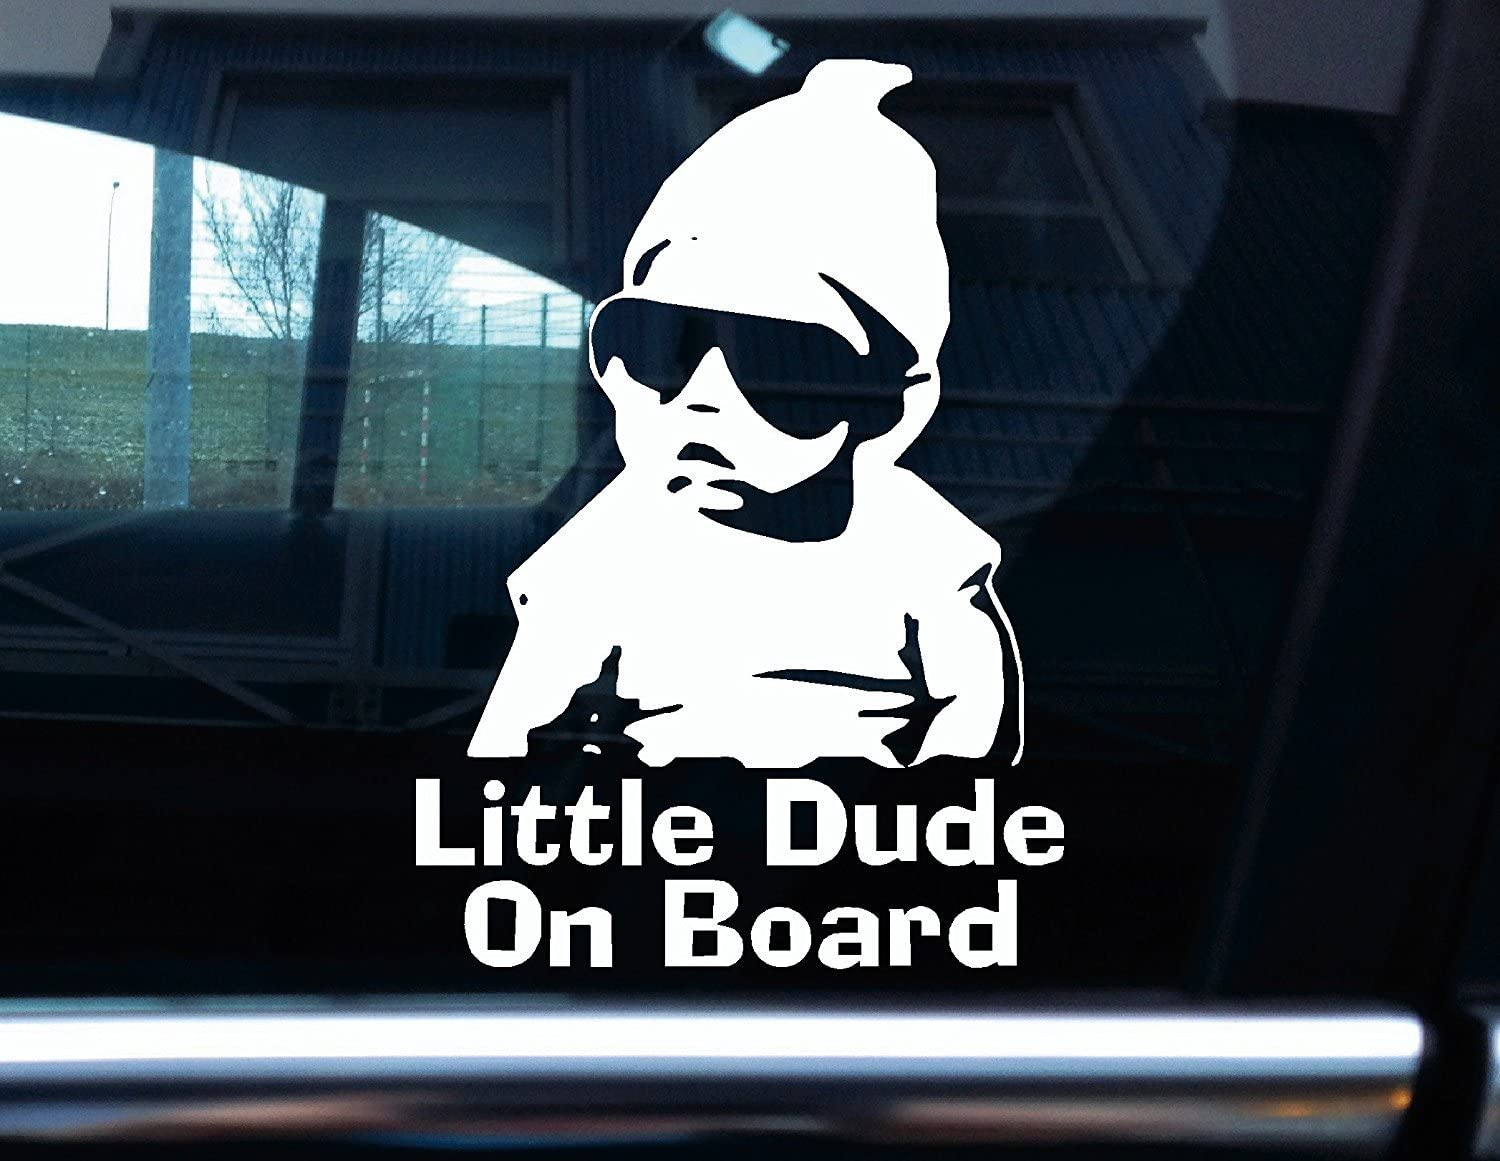 Turnerco Vinyle Stickers pour Inscription Little Dude on Board